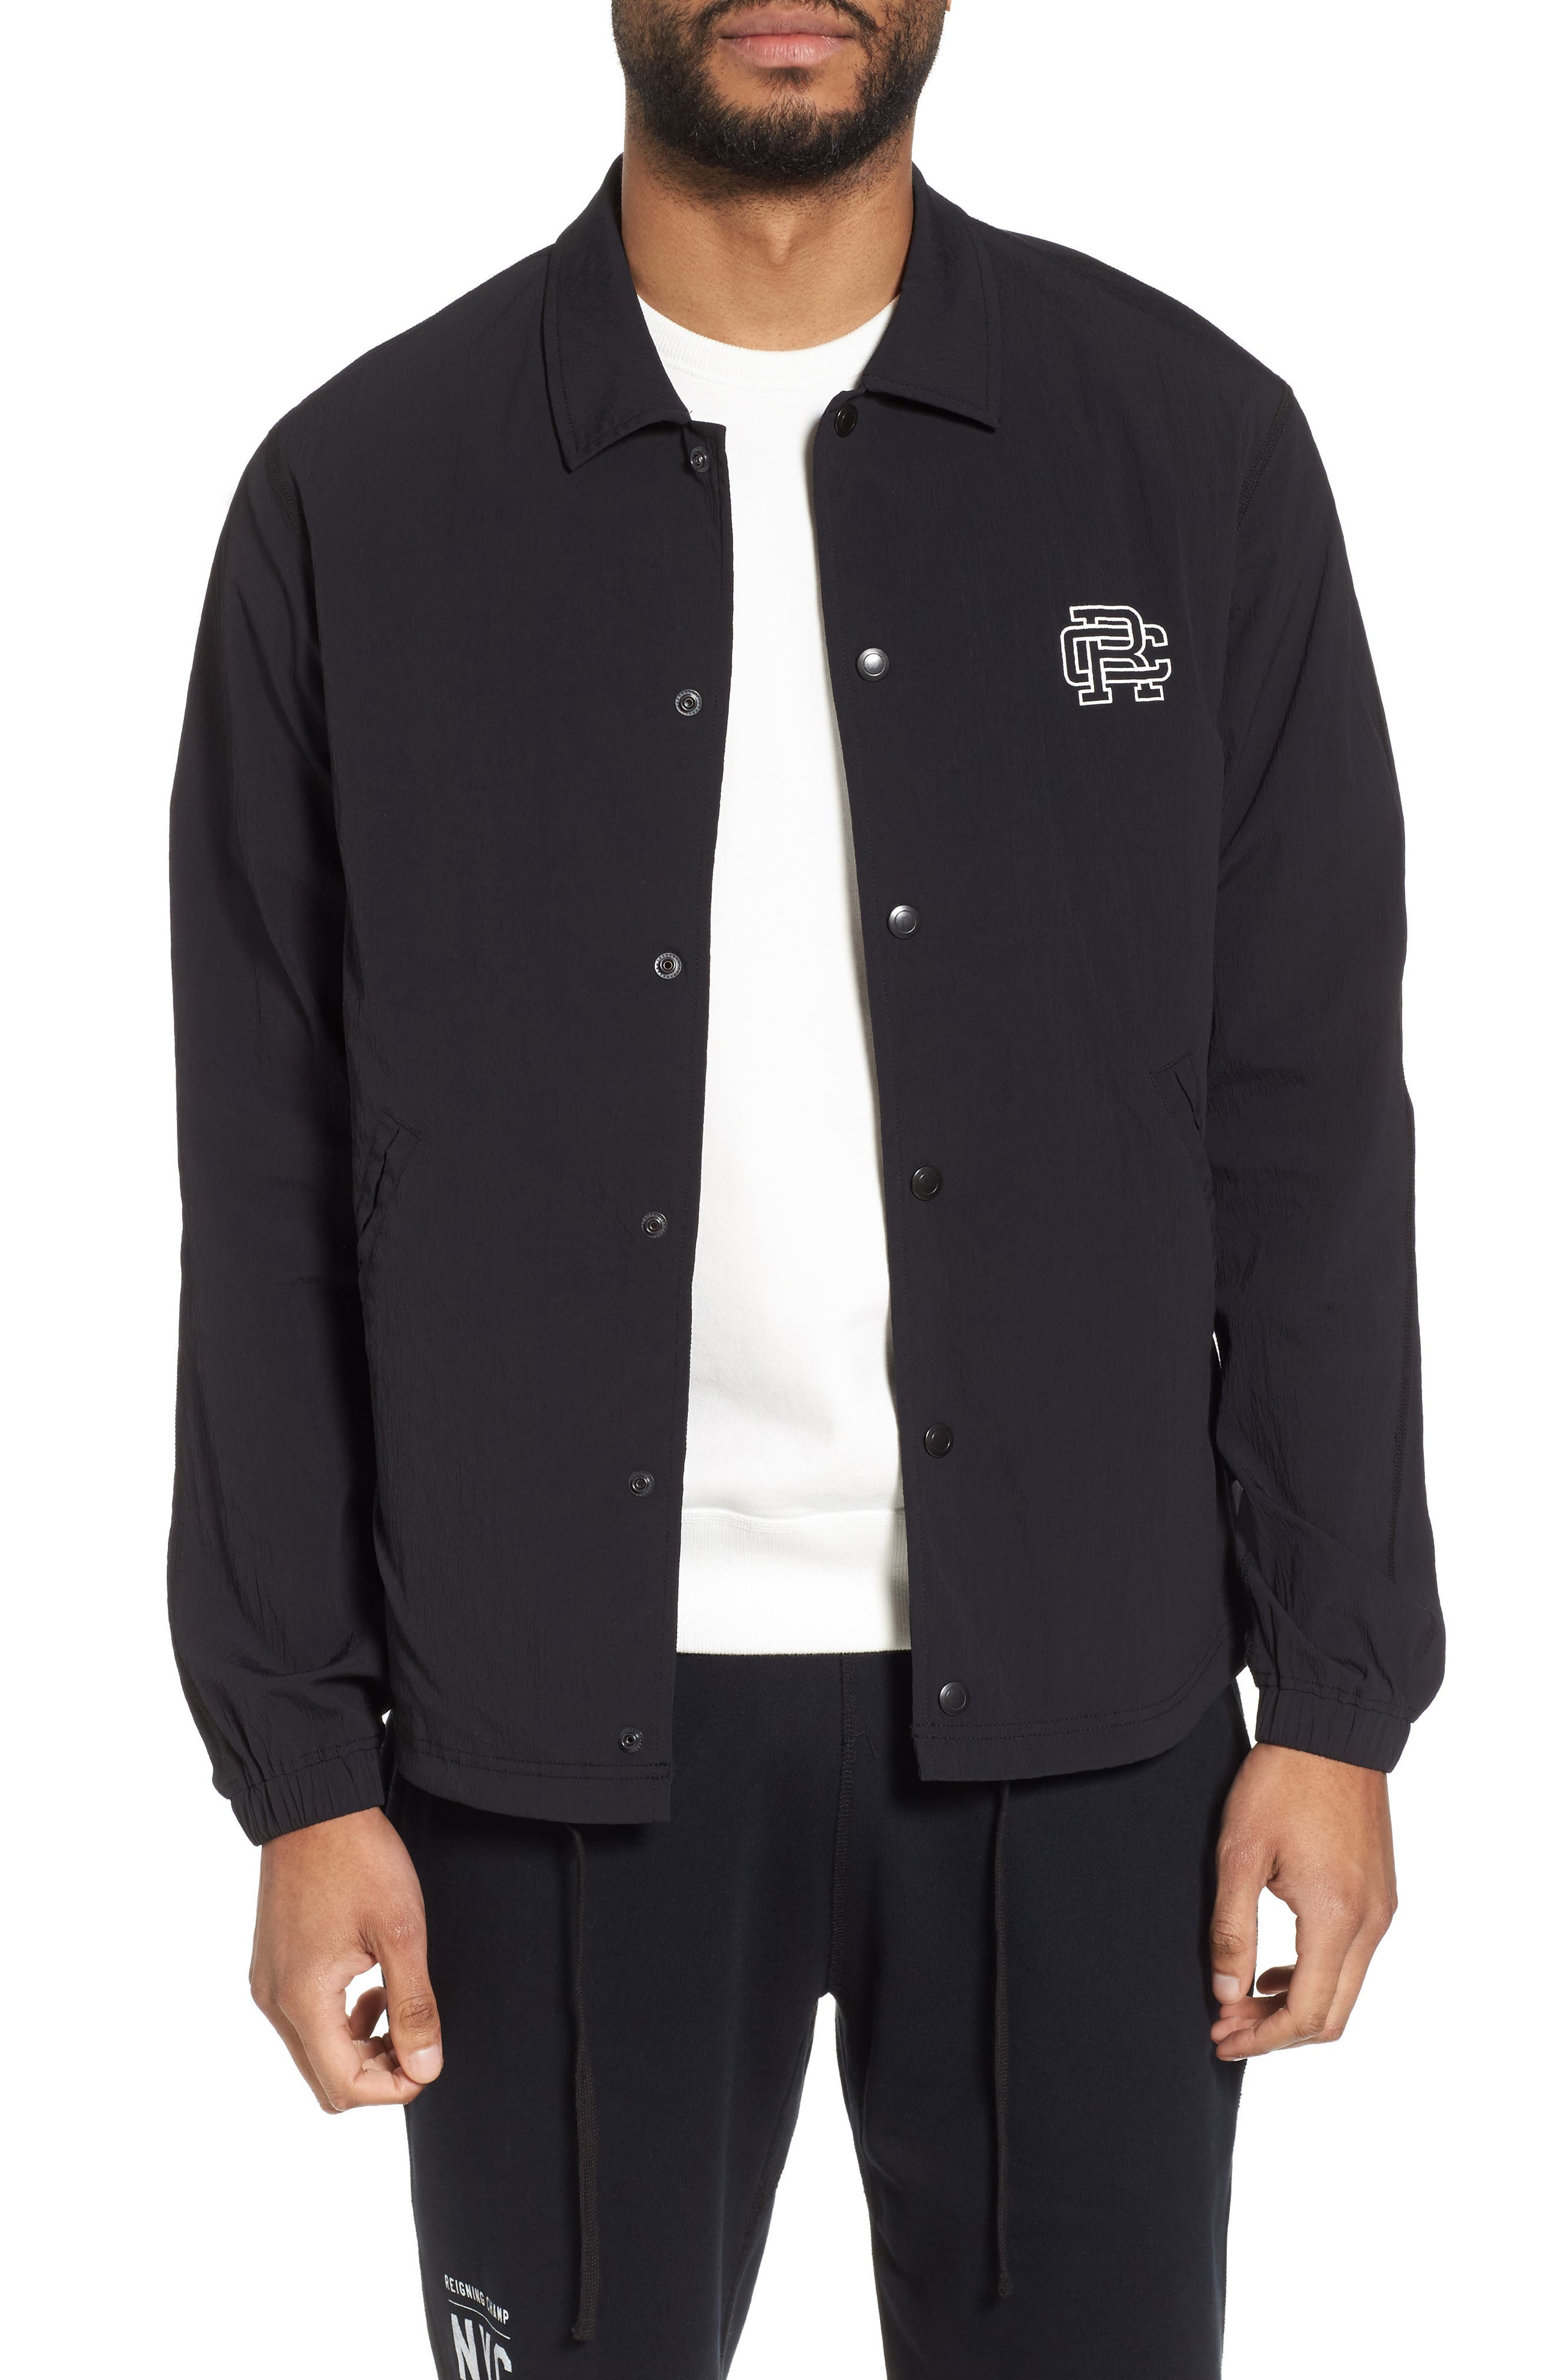 Coach's Jacket,                         Main,                         color, Black